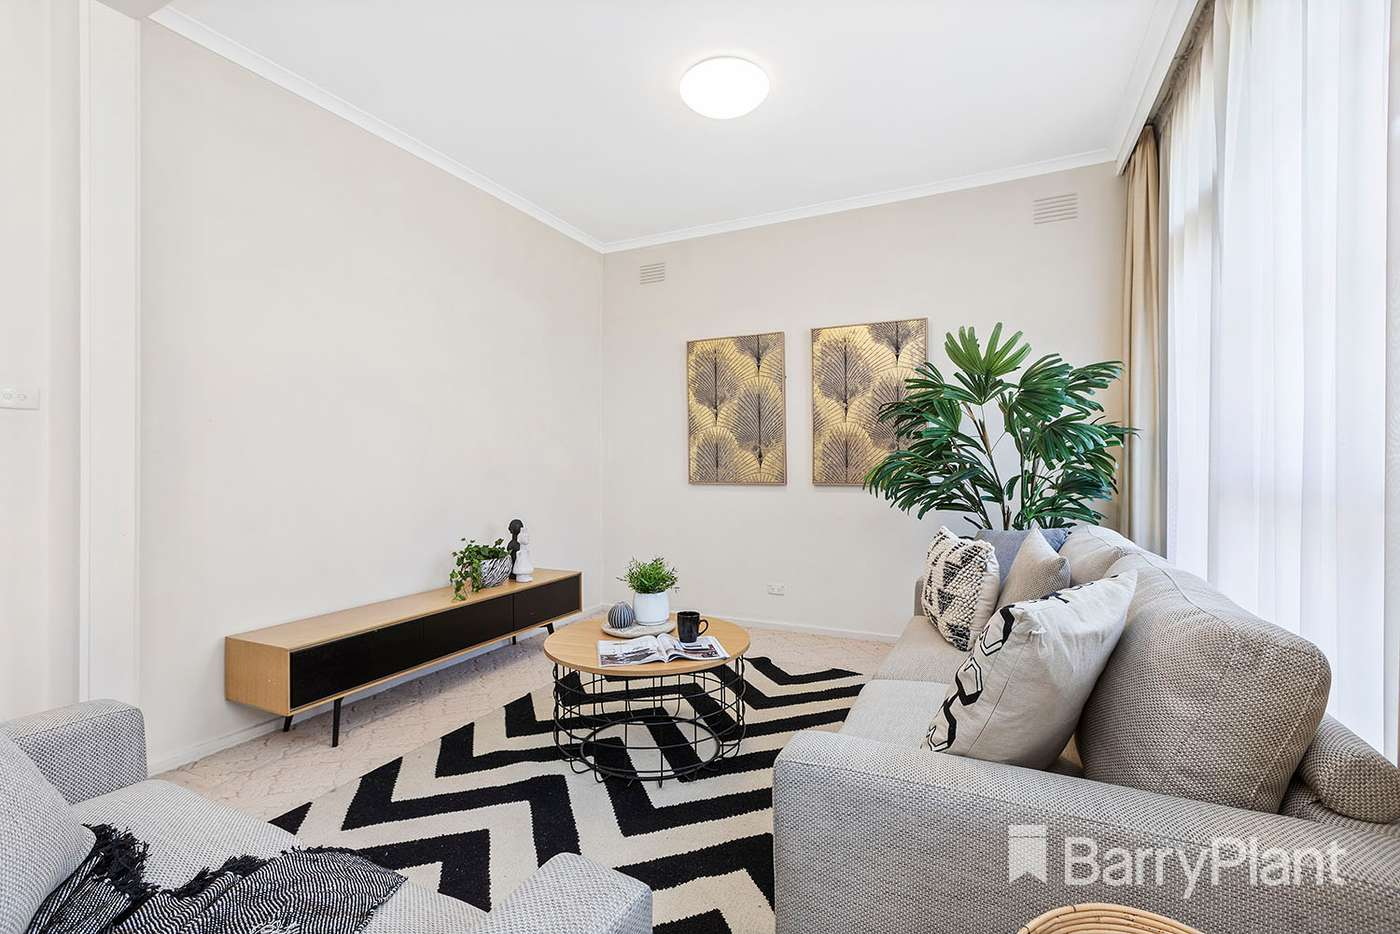 Fifth view of Homely villa listing, 1/434 Balcombe Road, Beaumaris VIC 3193